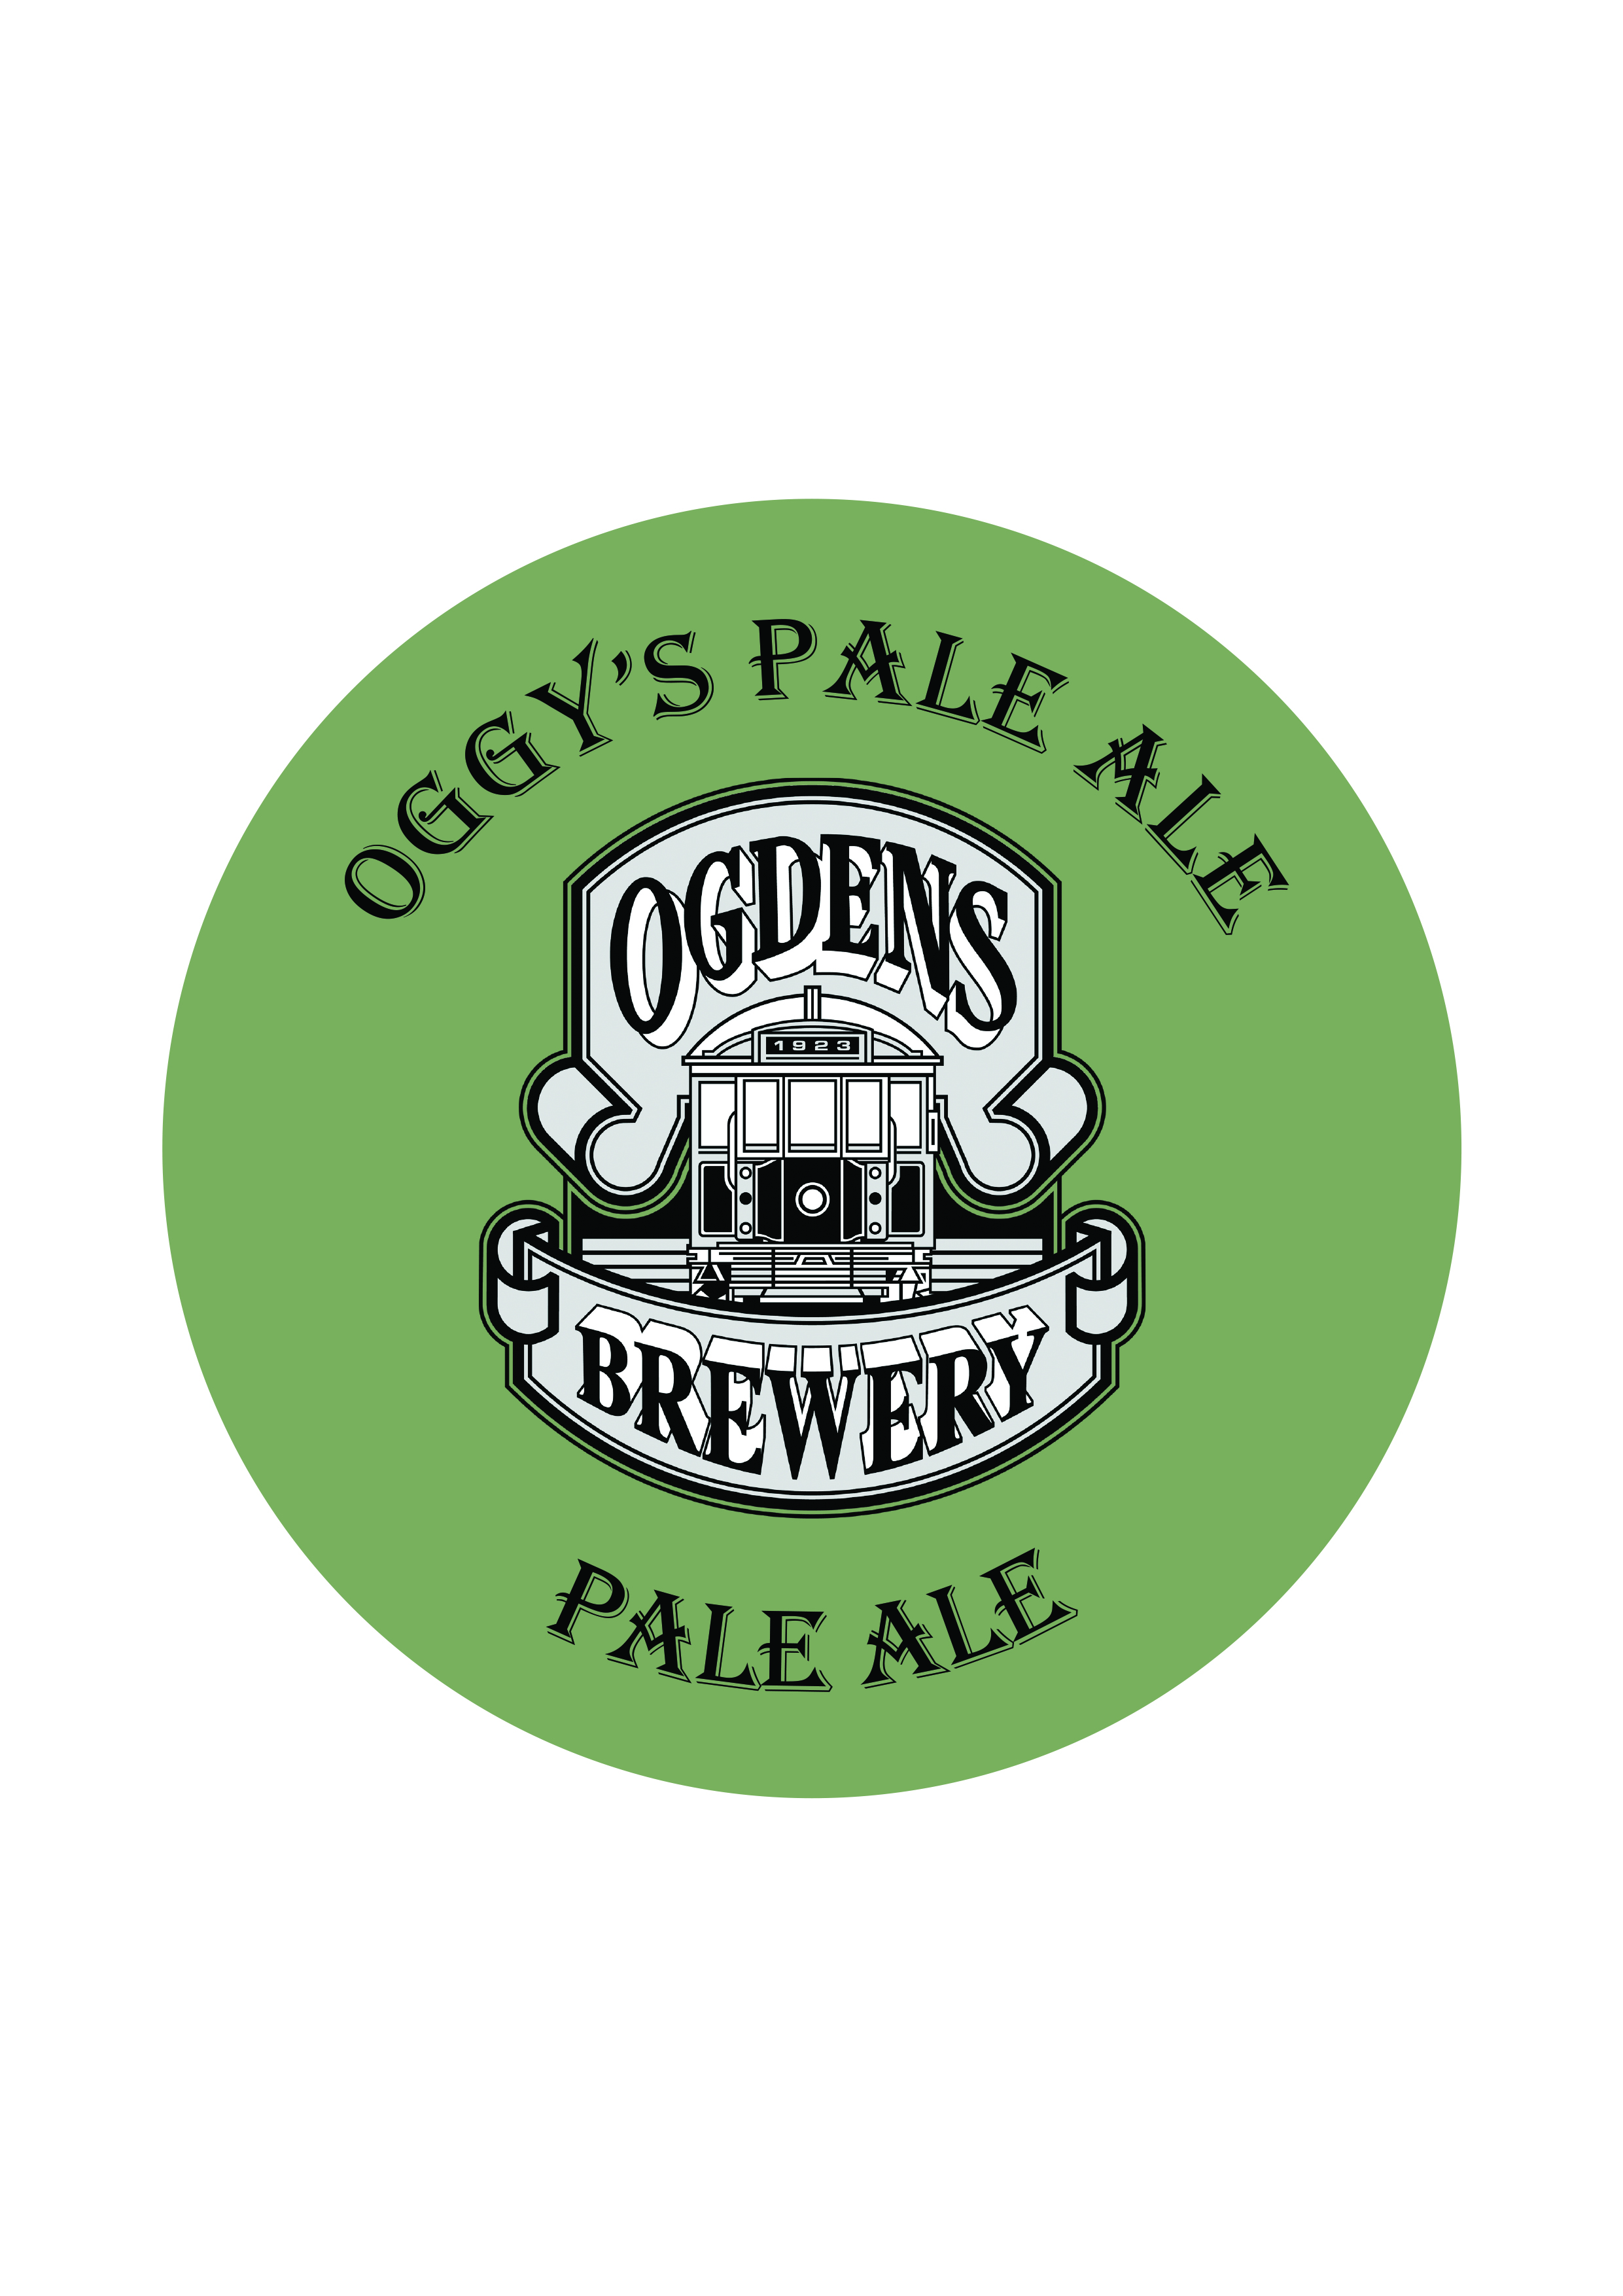 Oggy's Pale Ale   Pale Ale   5.5% - A classic American Pale ale, these range from medium bitterness to assertively bitter with a prominent US hop flavour and aroma. This beer is made with pale malt and a small amount of colour malts. This ale has aromas of tropical fruit, citrus and stone fruit.